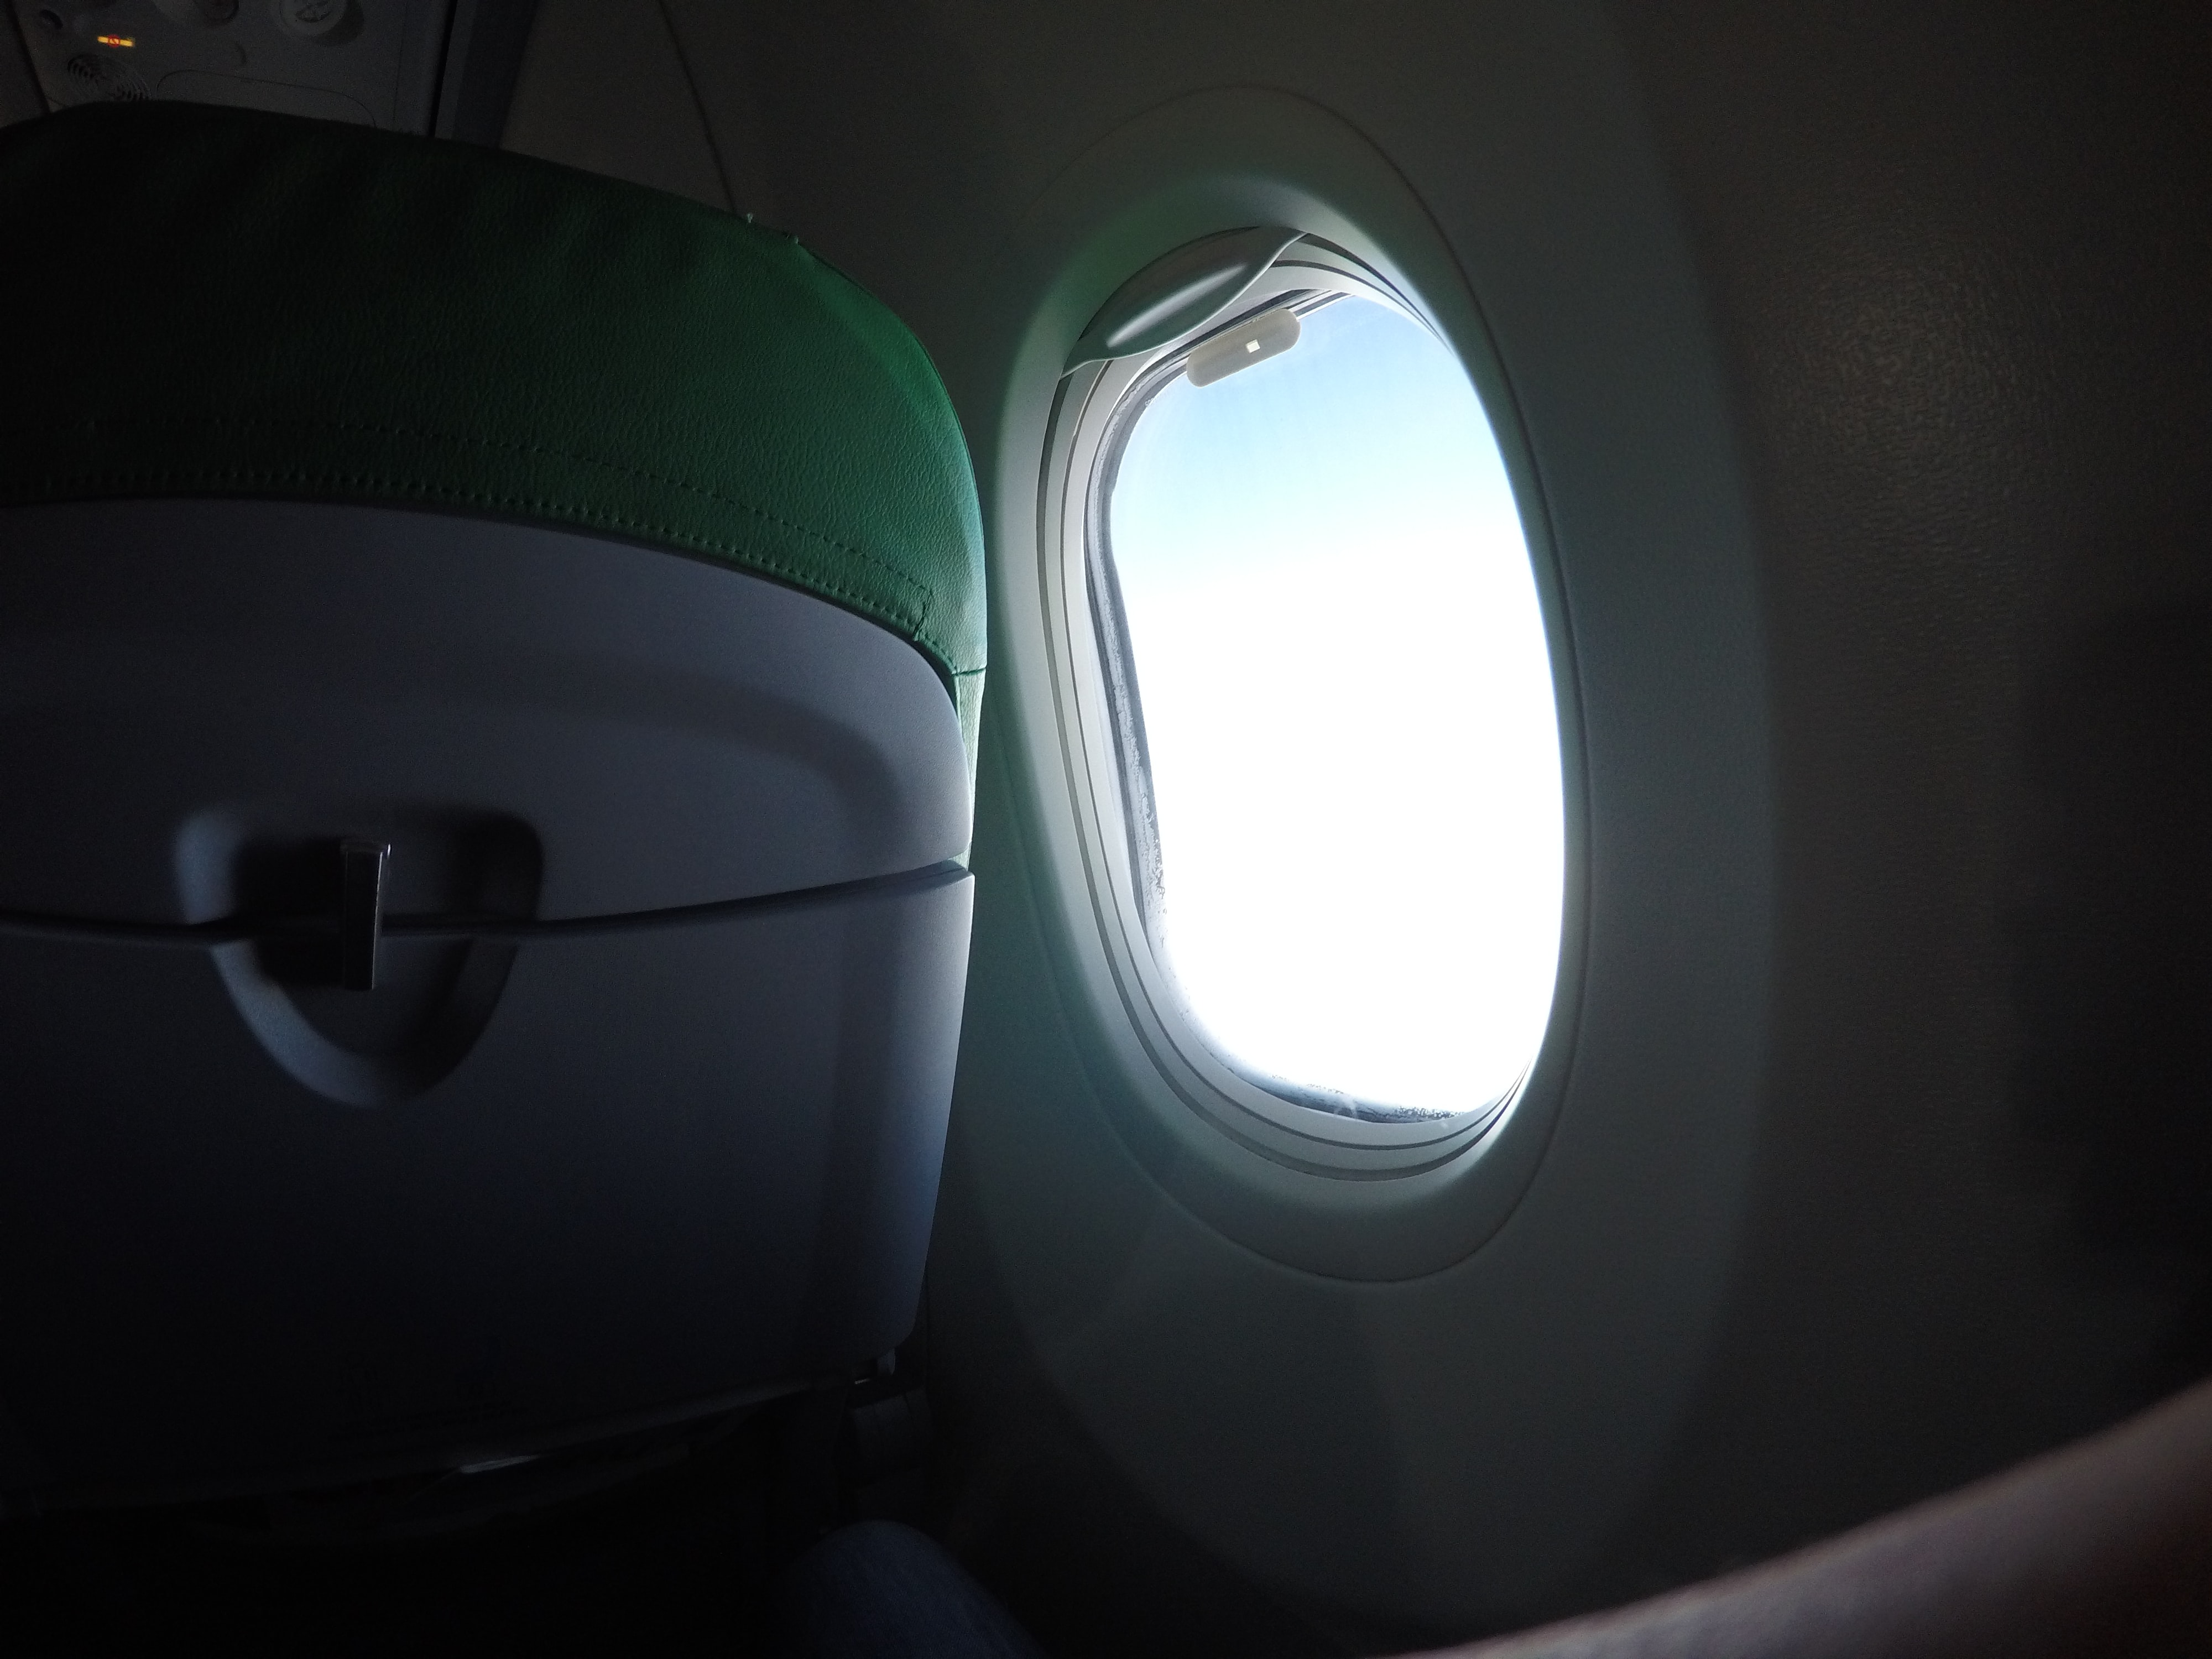 A round airplane window with pale light shining through it